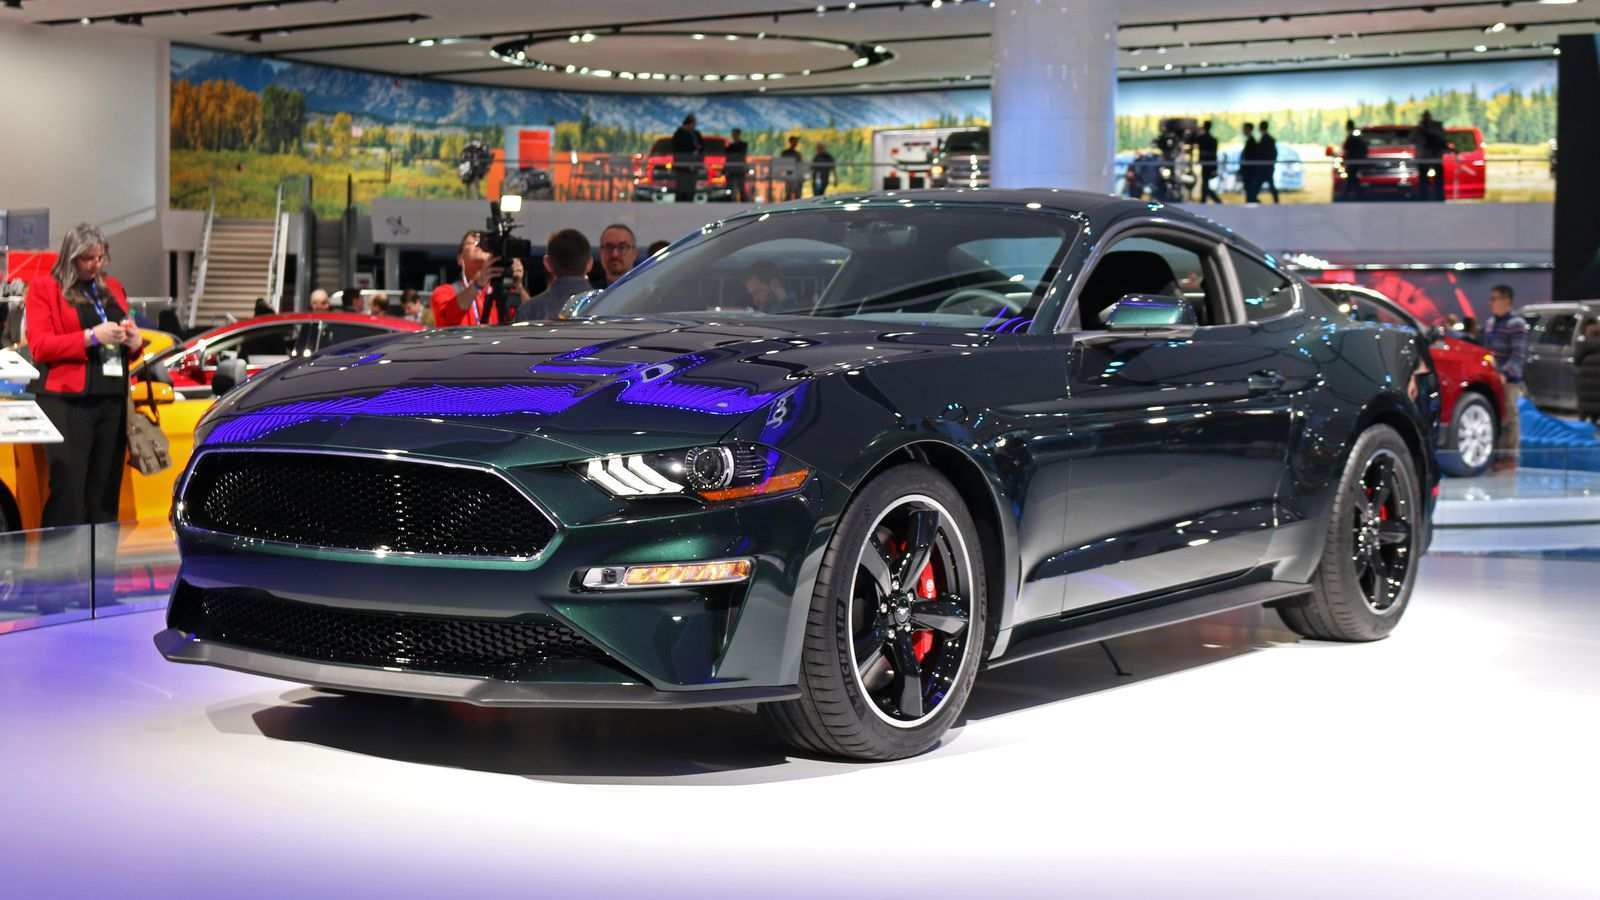 68 Gallery of Best 2019 Ford Mustang Bullitt Picture Release Date And Review Wallpaper for Best 2019 Ford Mustang Bullitt Picture Release Date And Review